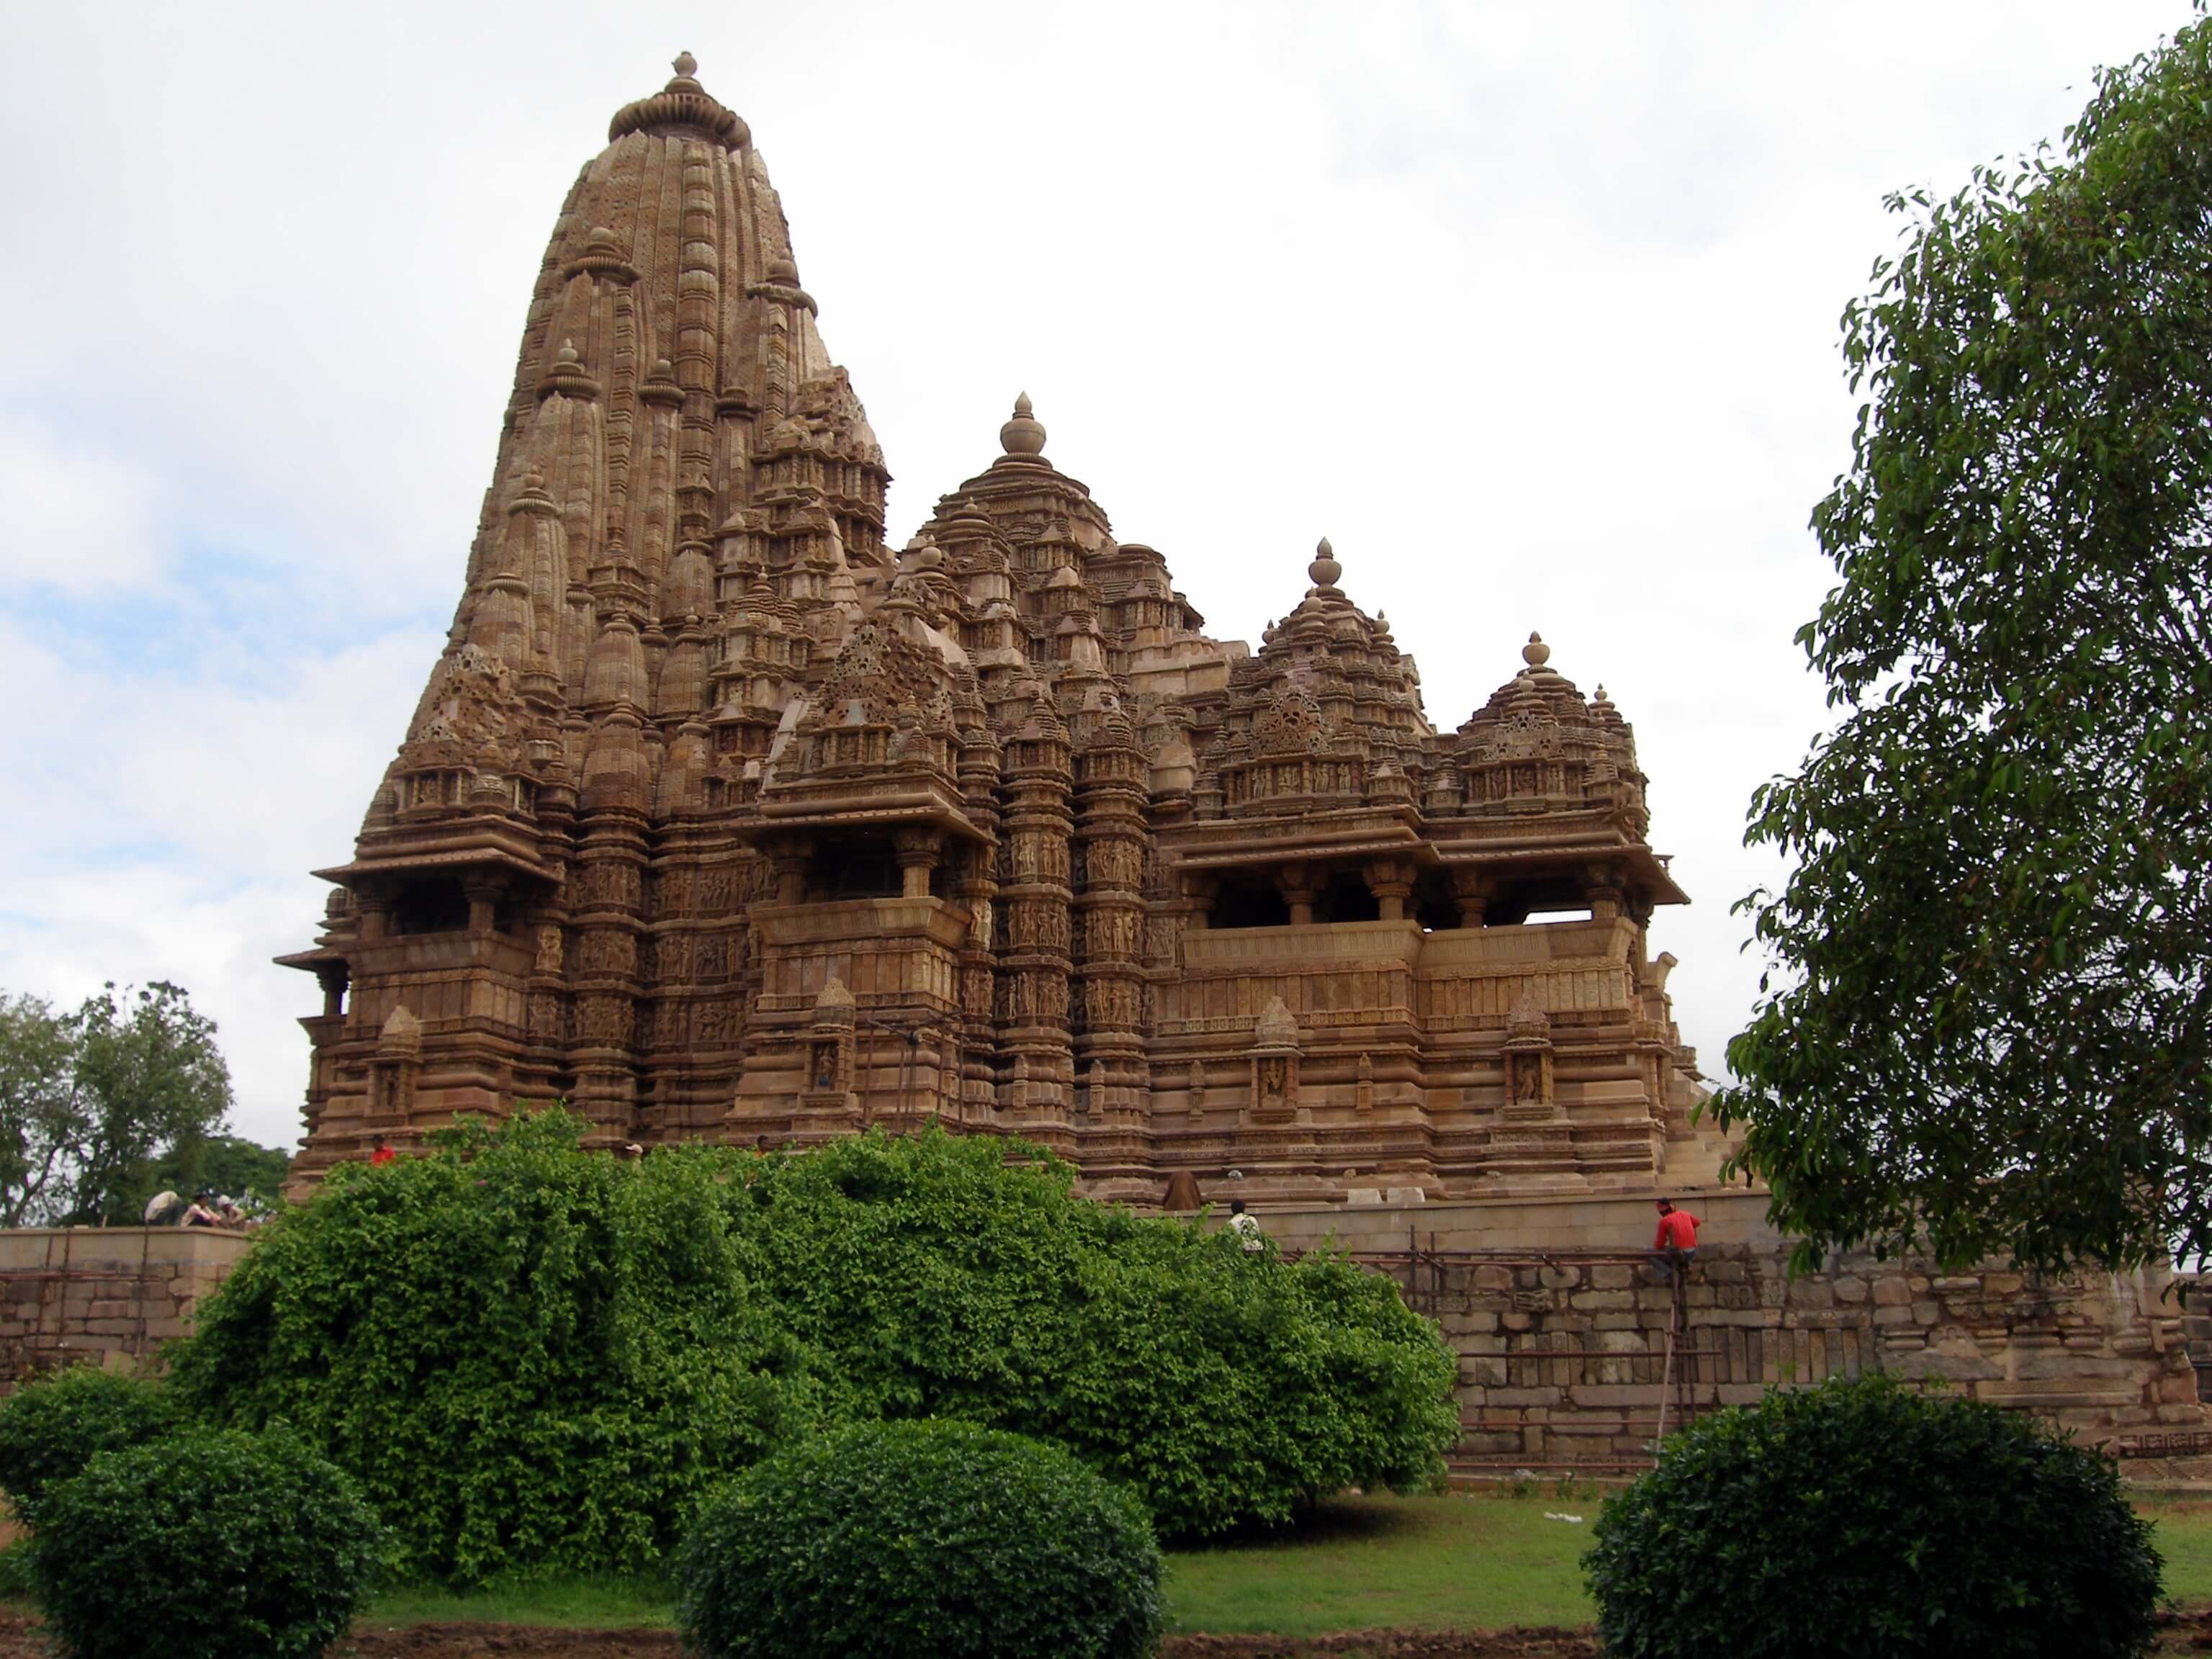 Khandariya temple at Khajuraho